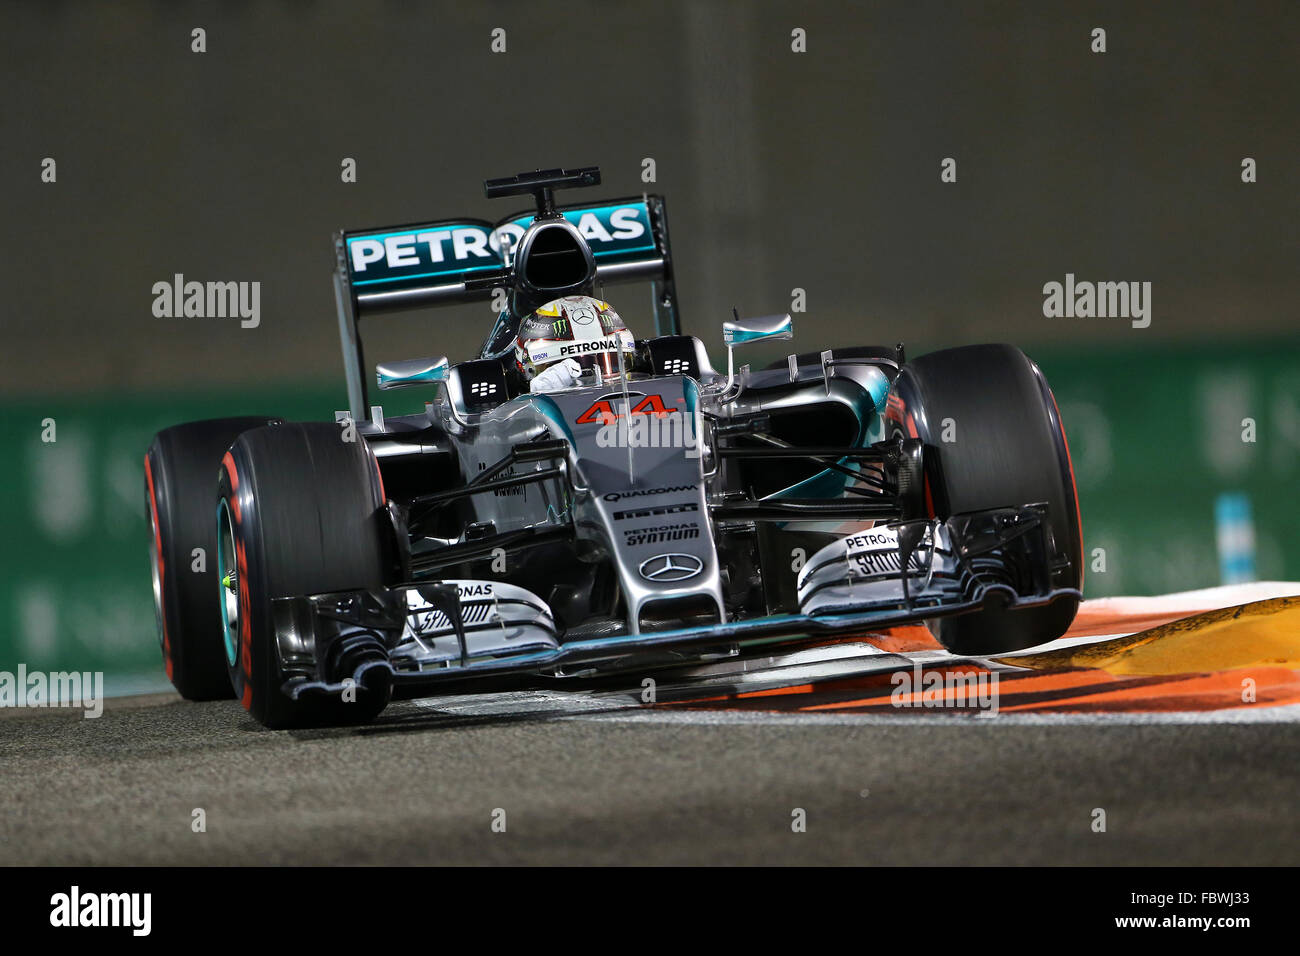 mercedes amg petronas team f1 stock photos mercedes amg petronas team f1 stock images alamy. Black Bedroom Furniture Sets. Home Design Ideas